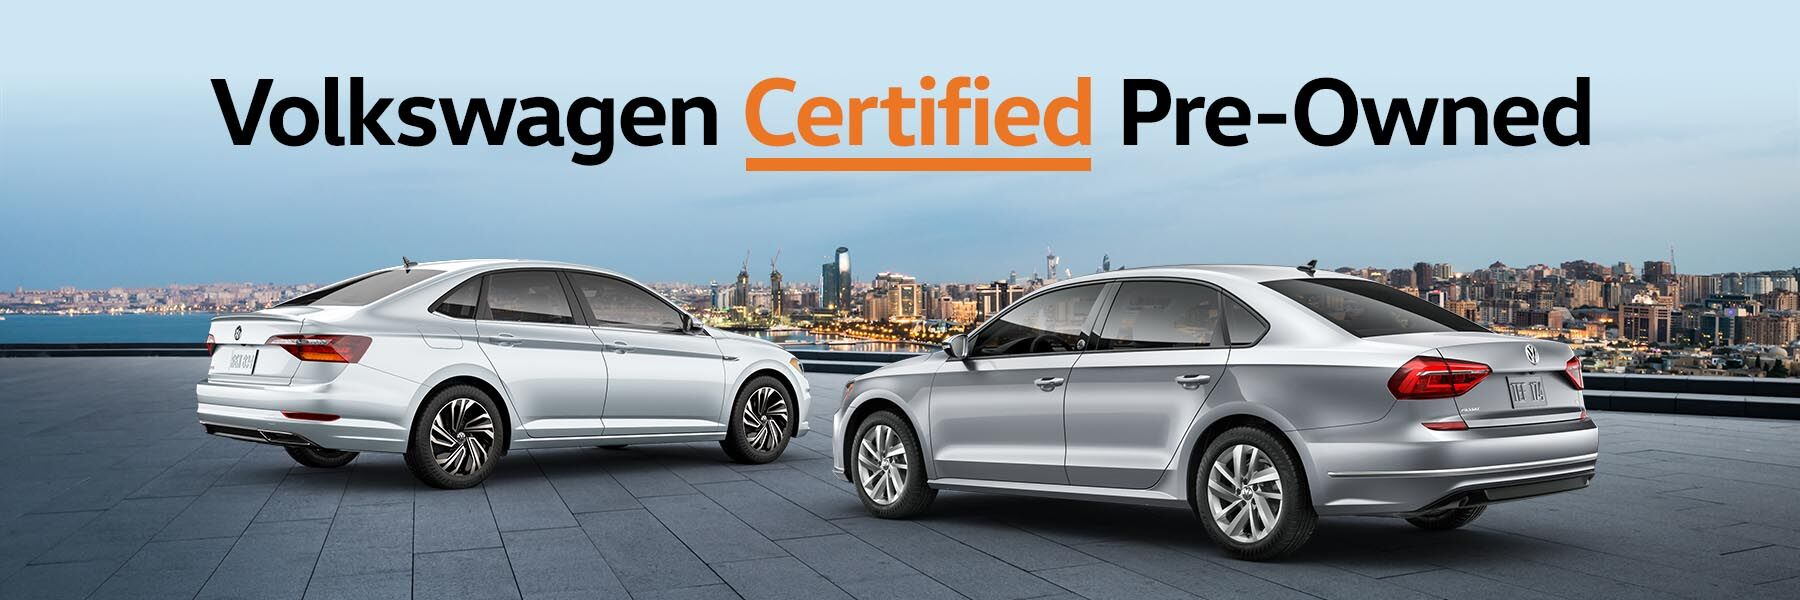 Volkswagen Certified Pre-Owned in Providence, RI